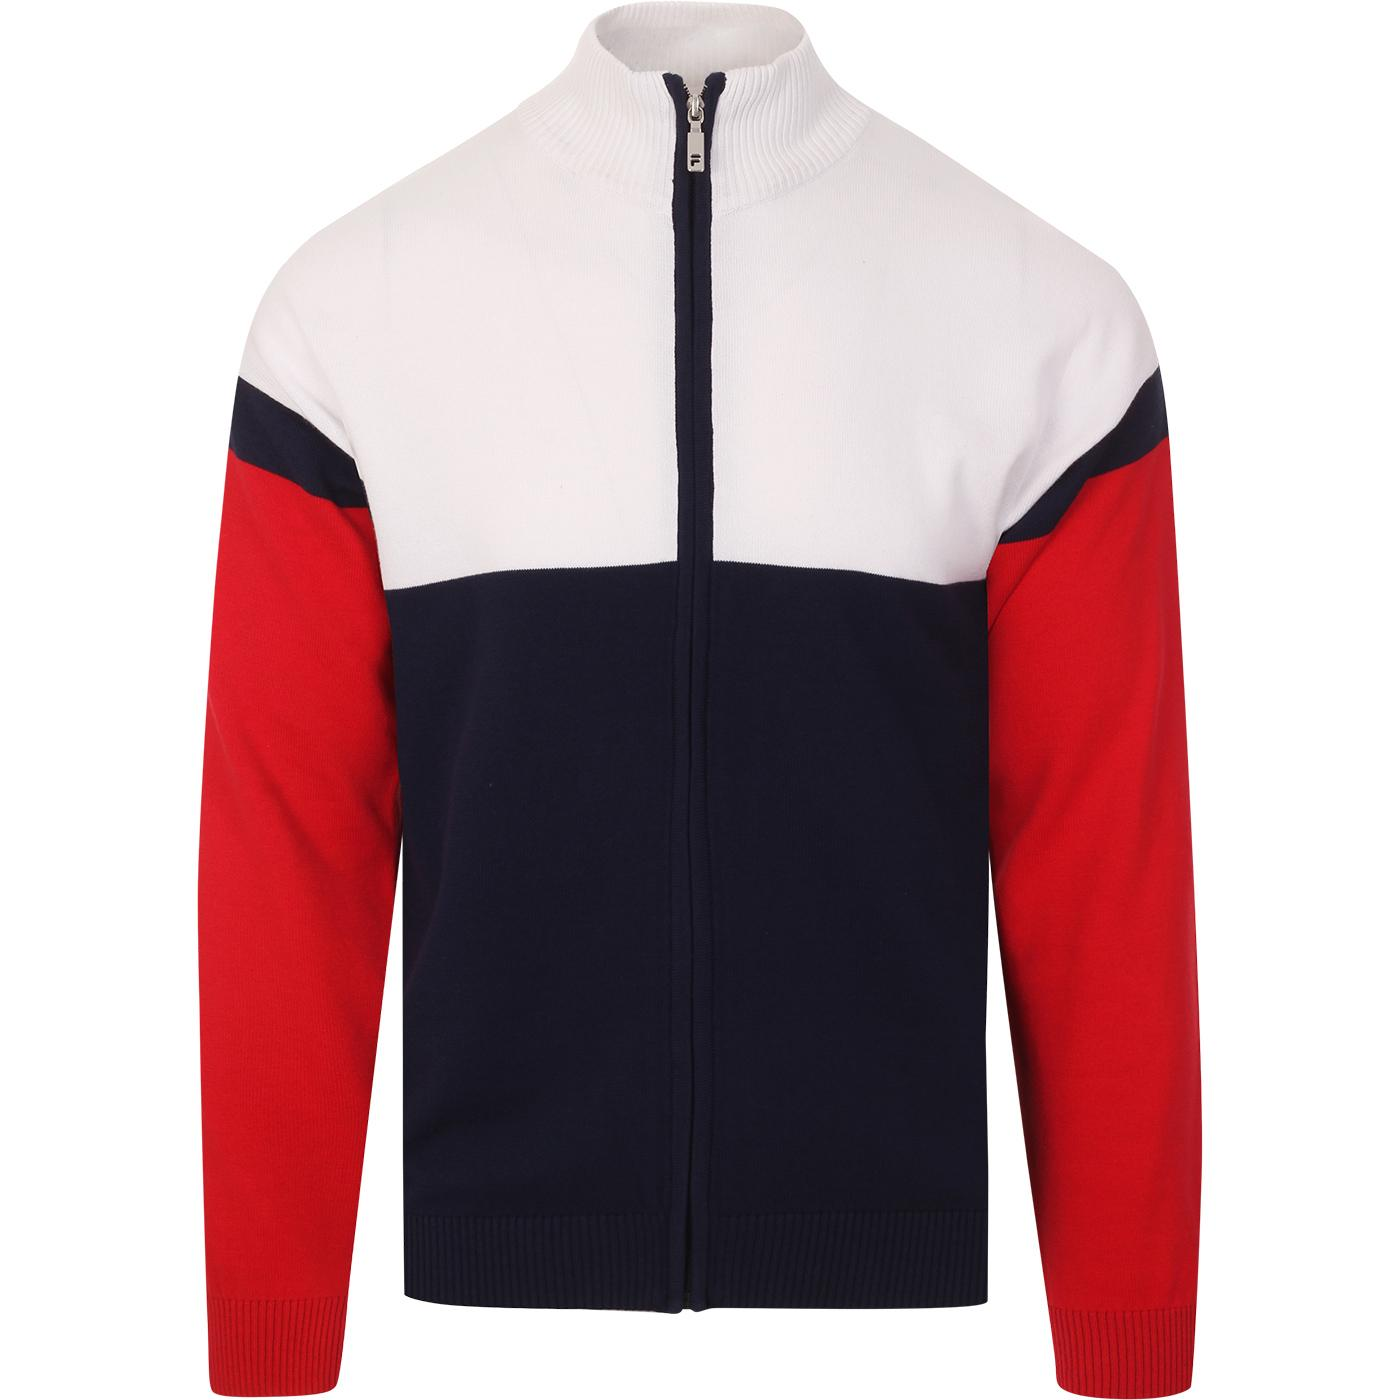 Kerry FILA VINTAGE Knitted Colour Block Cardigan P